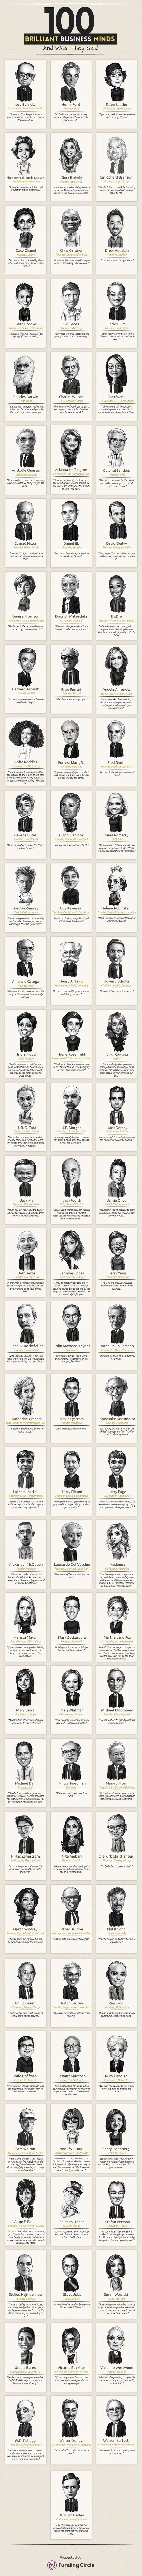 Infografik - 100 Brilliant Business Minds by Funding Circle